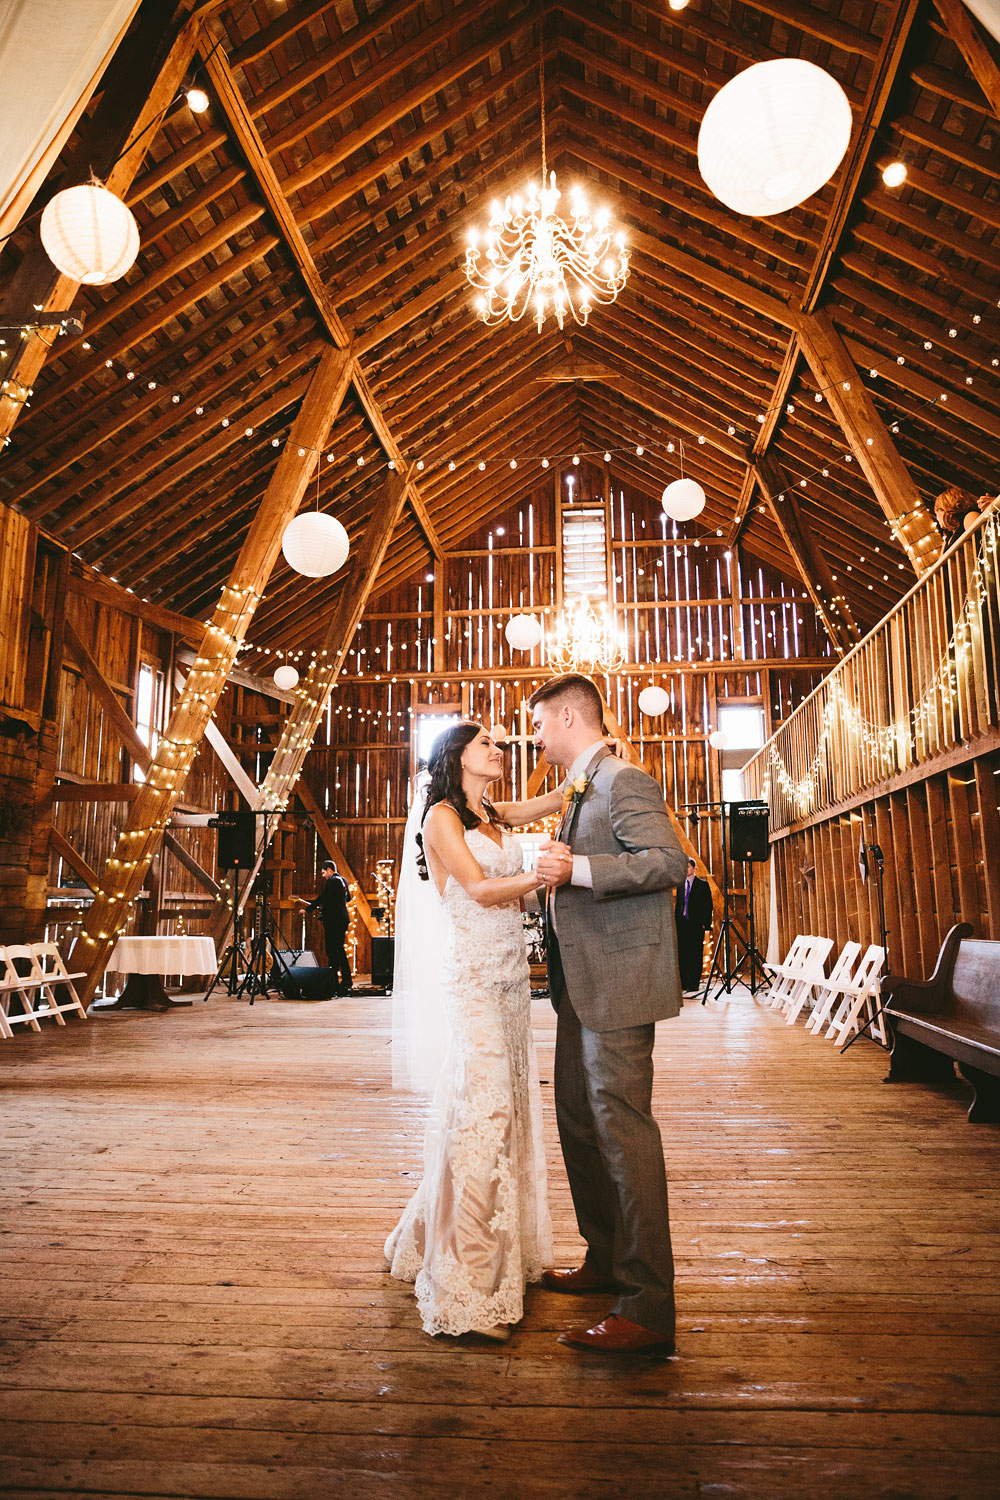 barn-rustic-wedding-photographers-the-meadows-cleveland-wedding-photographers-77.jpg